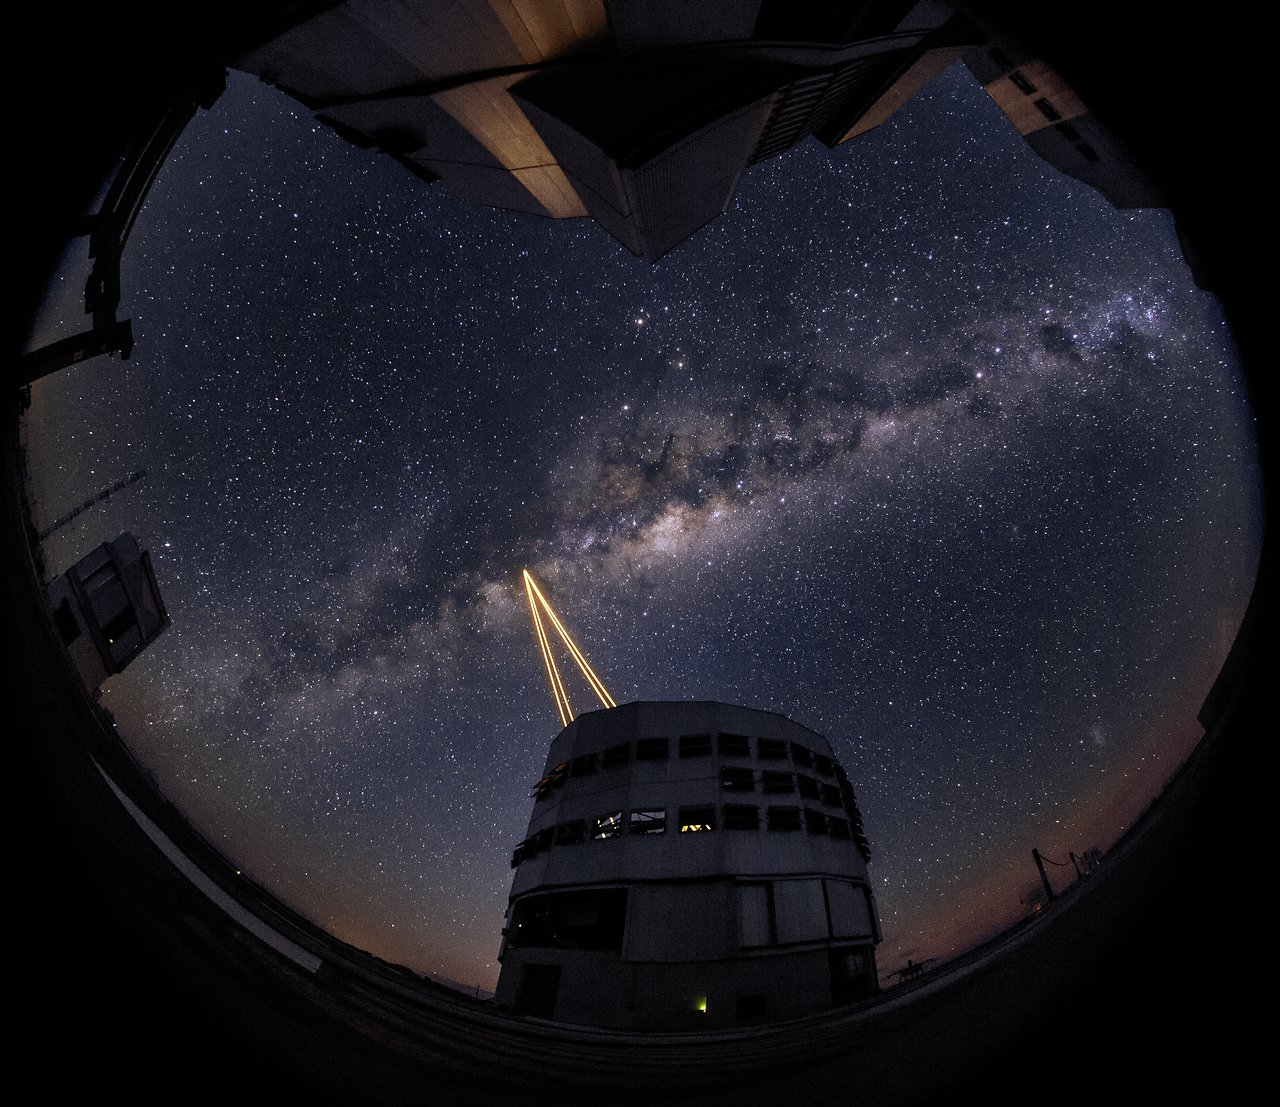 Four bright lasers, the most powerful ever put on a telescope, fire into the night sky to create an artificial guide star for the European Southern Observatory's Very Large Telescope at the Paranal Observatory in Chile on April 28, 2016. The lasers are pa